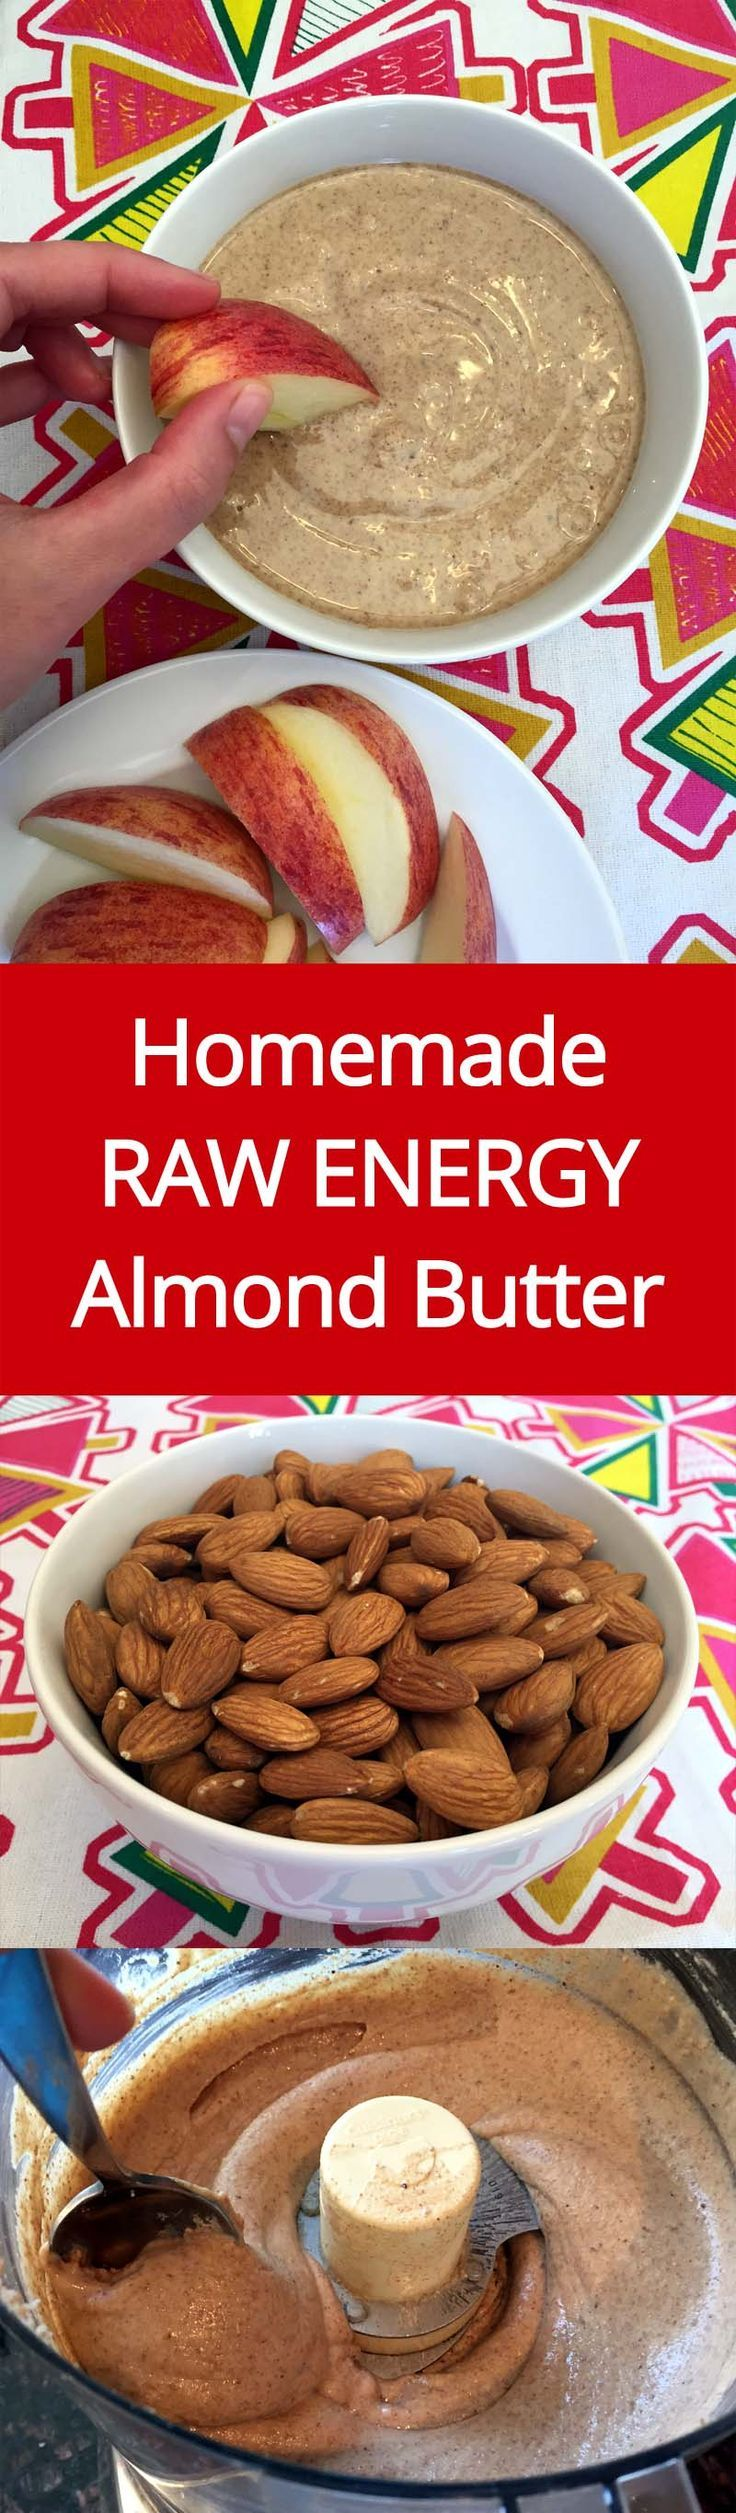 Homemade Almond Butter Recipe - How To Make Raw Organic Almond Butter With Your Food Processor! | MelanieCooks.com